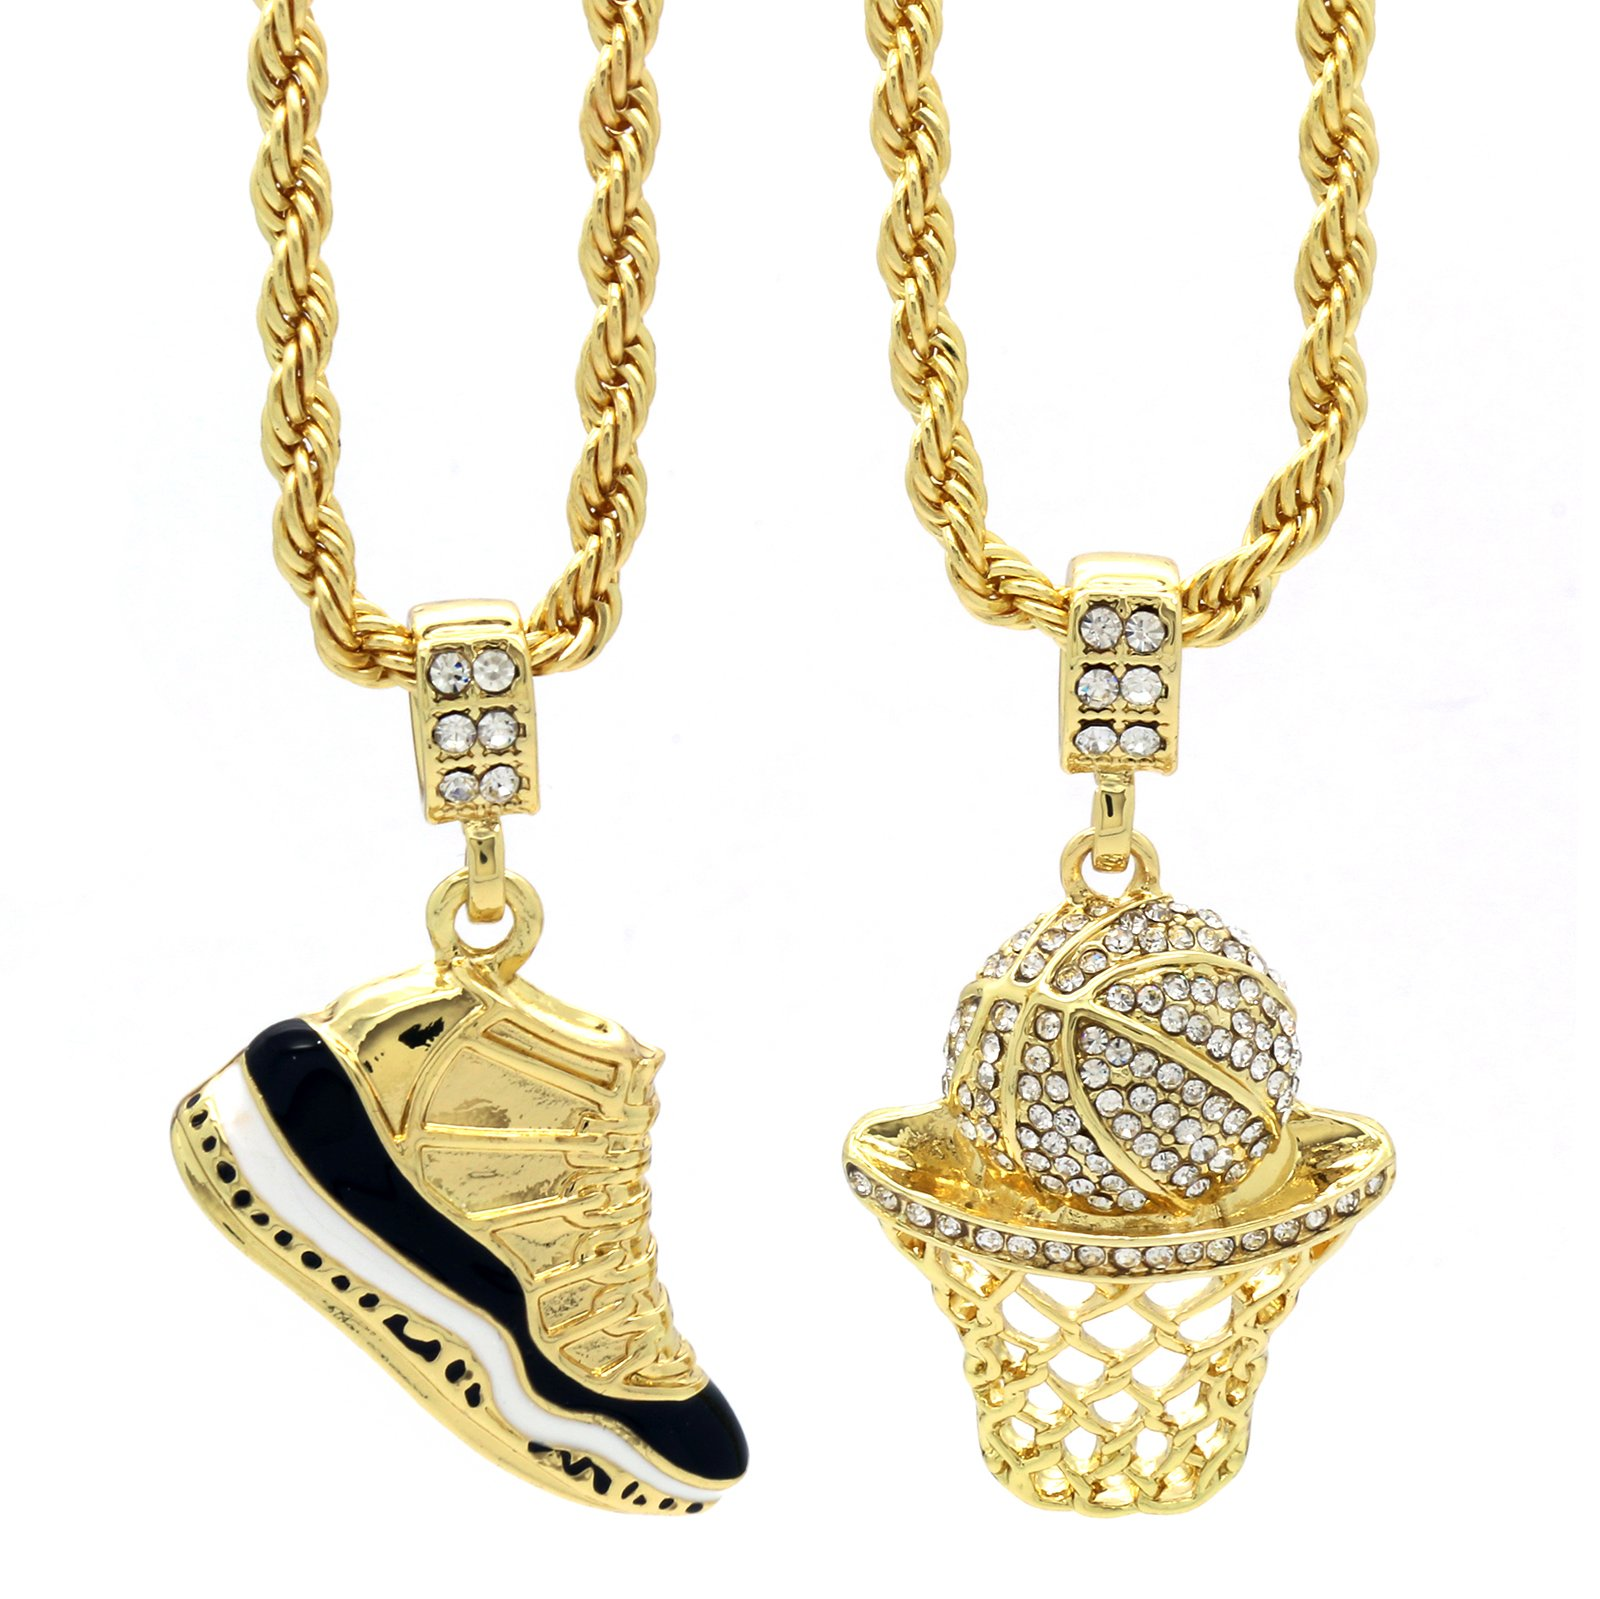 L & L Nation Mens Gold Plated HipHop Retro 11'' Concord & Cz Basketball Pendant 4mm 24'' Rope Chain by L & L Nation